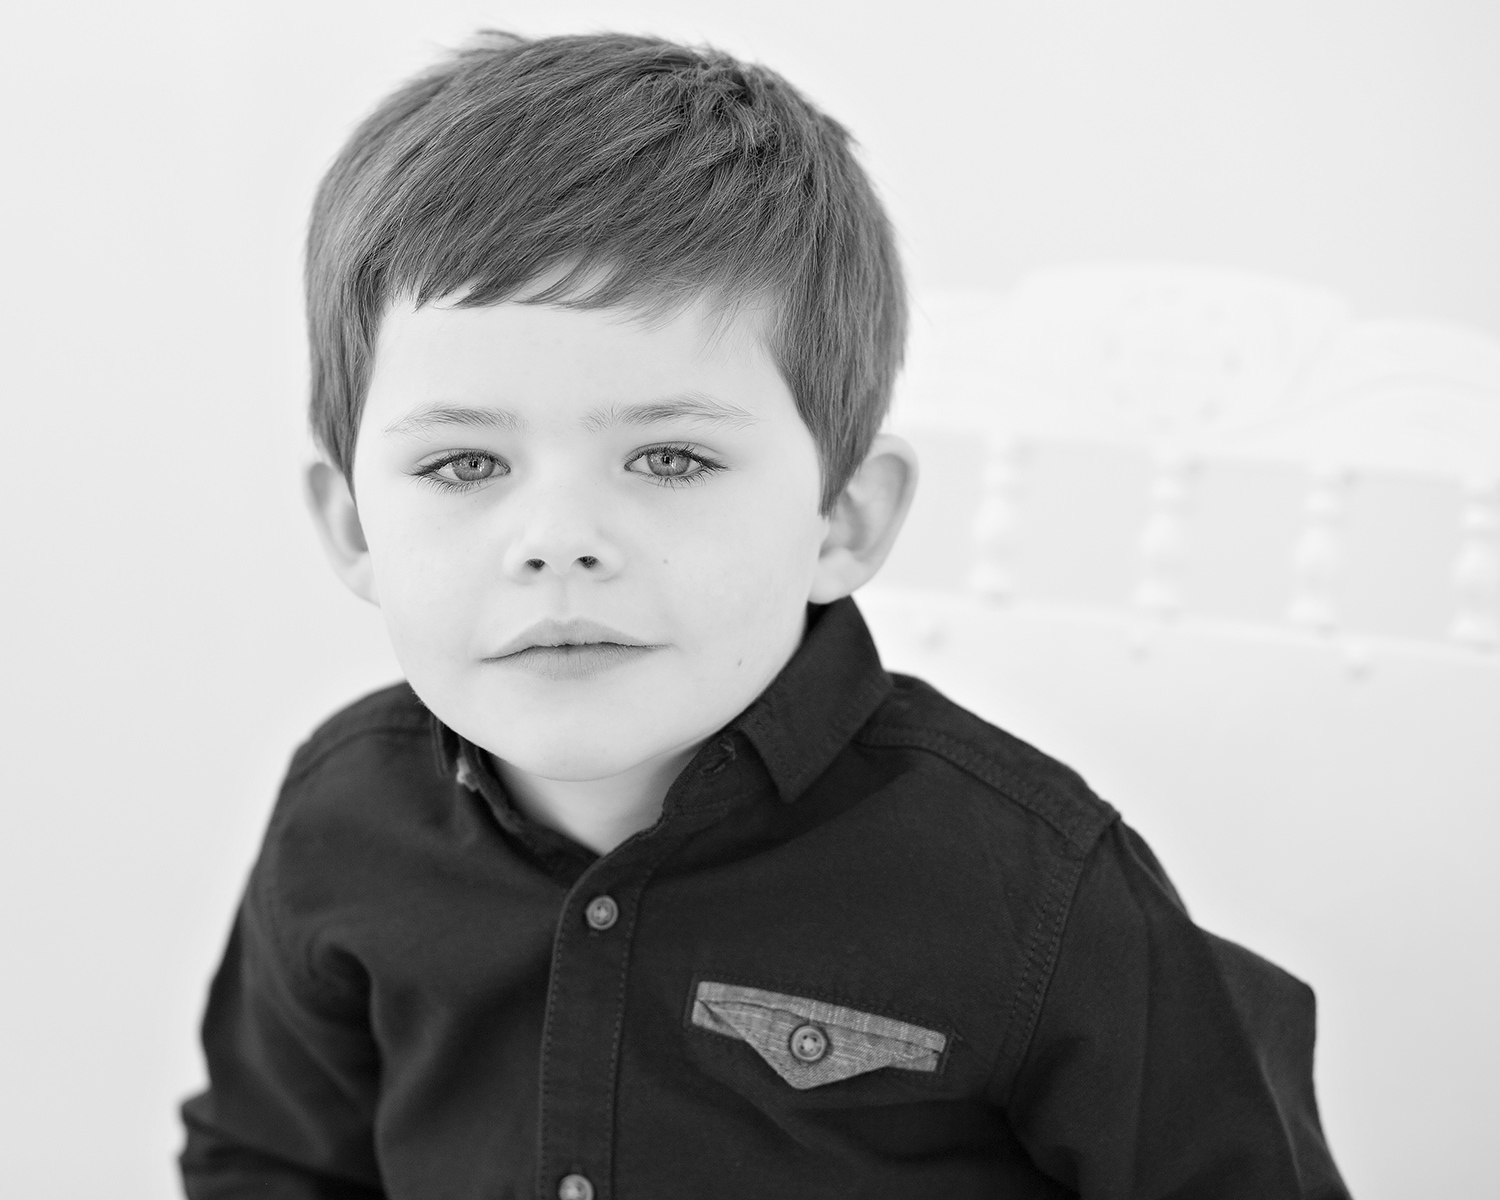 Children's headshot session